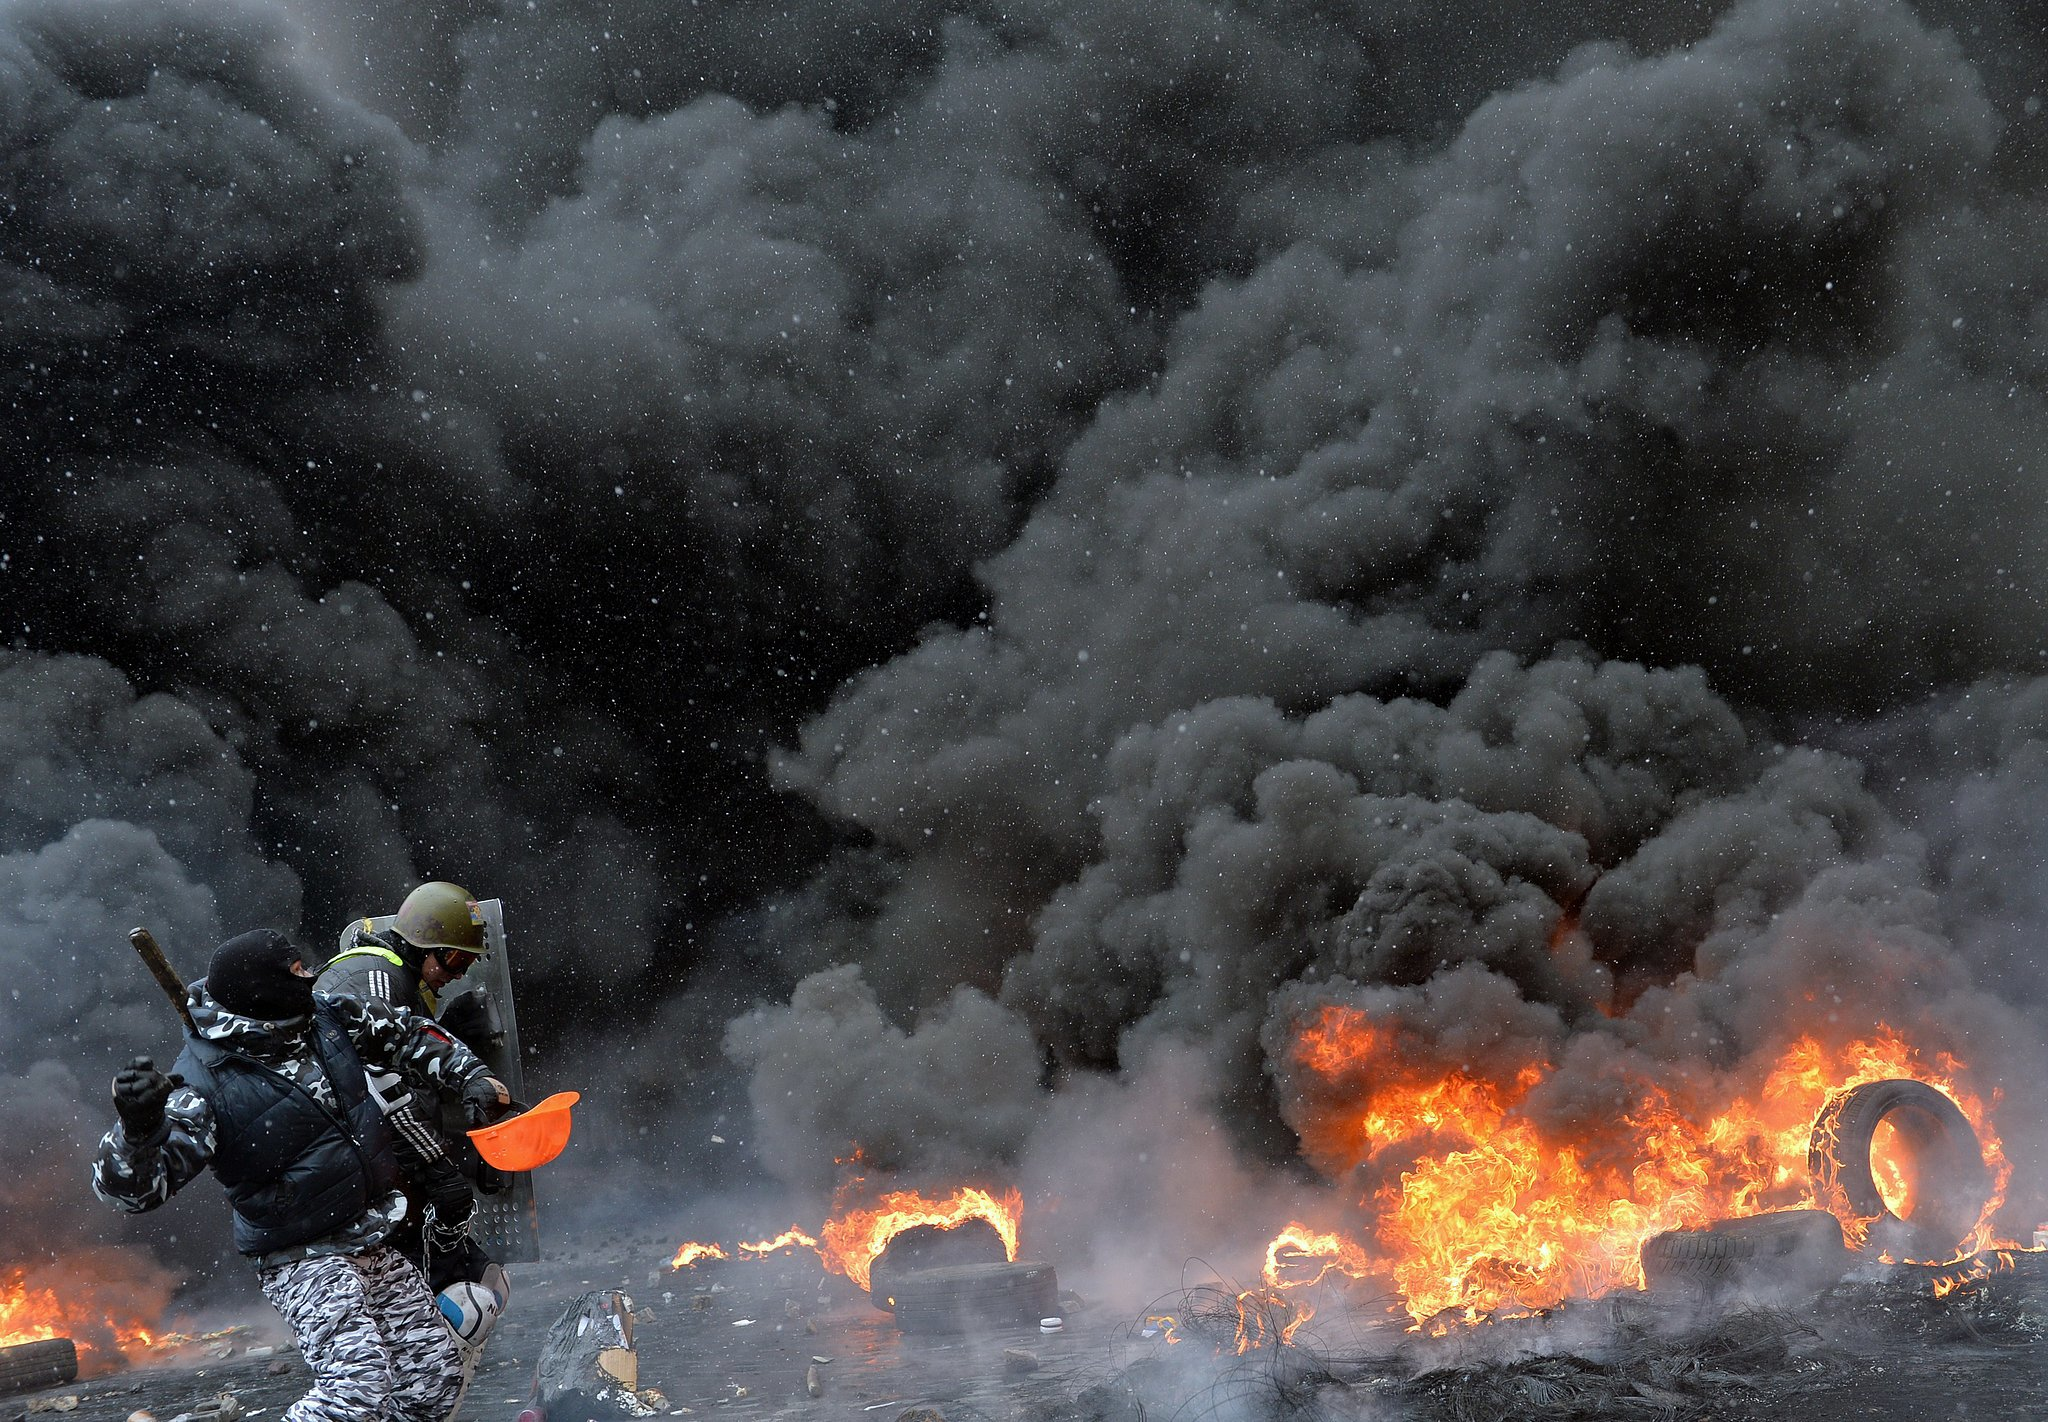 After months of growing antigovernment unrest, clashes in Kiev grew increasingly violent in January, as this fiery photo from the Ukrainian capital shows. The protesters were calling for the removal of President Viktor Yanukovych, who had been in office since 2010. This past November, he pulled away from a partnership with the European Union, which implied that he'd rather align with Russia, and the people weren't too happy about it.